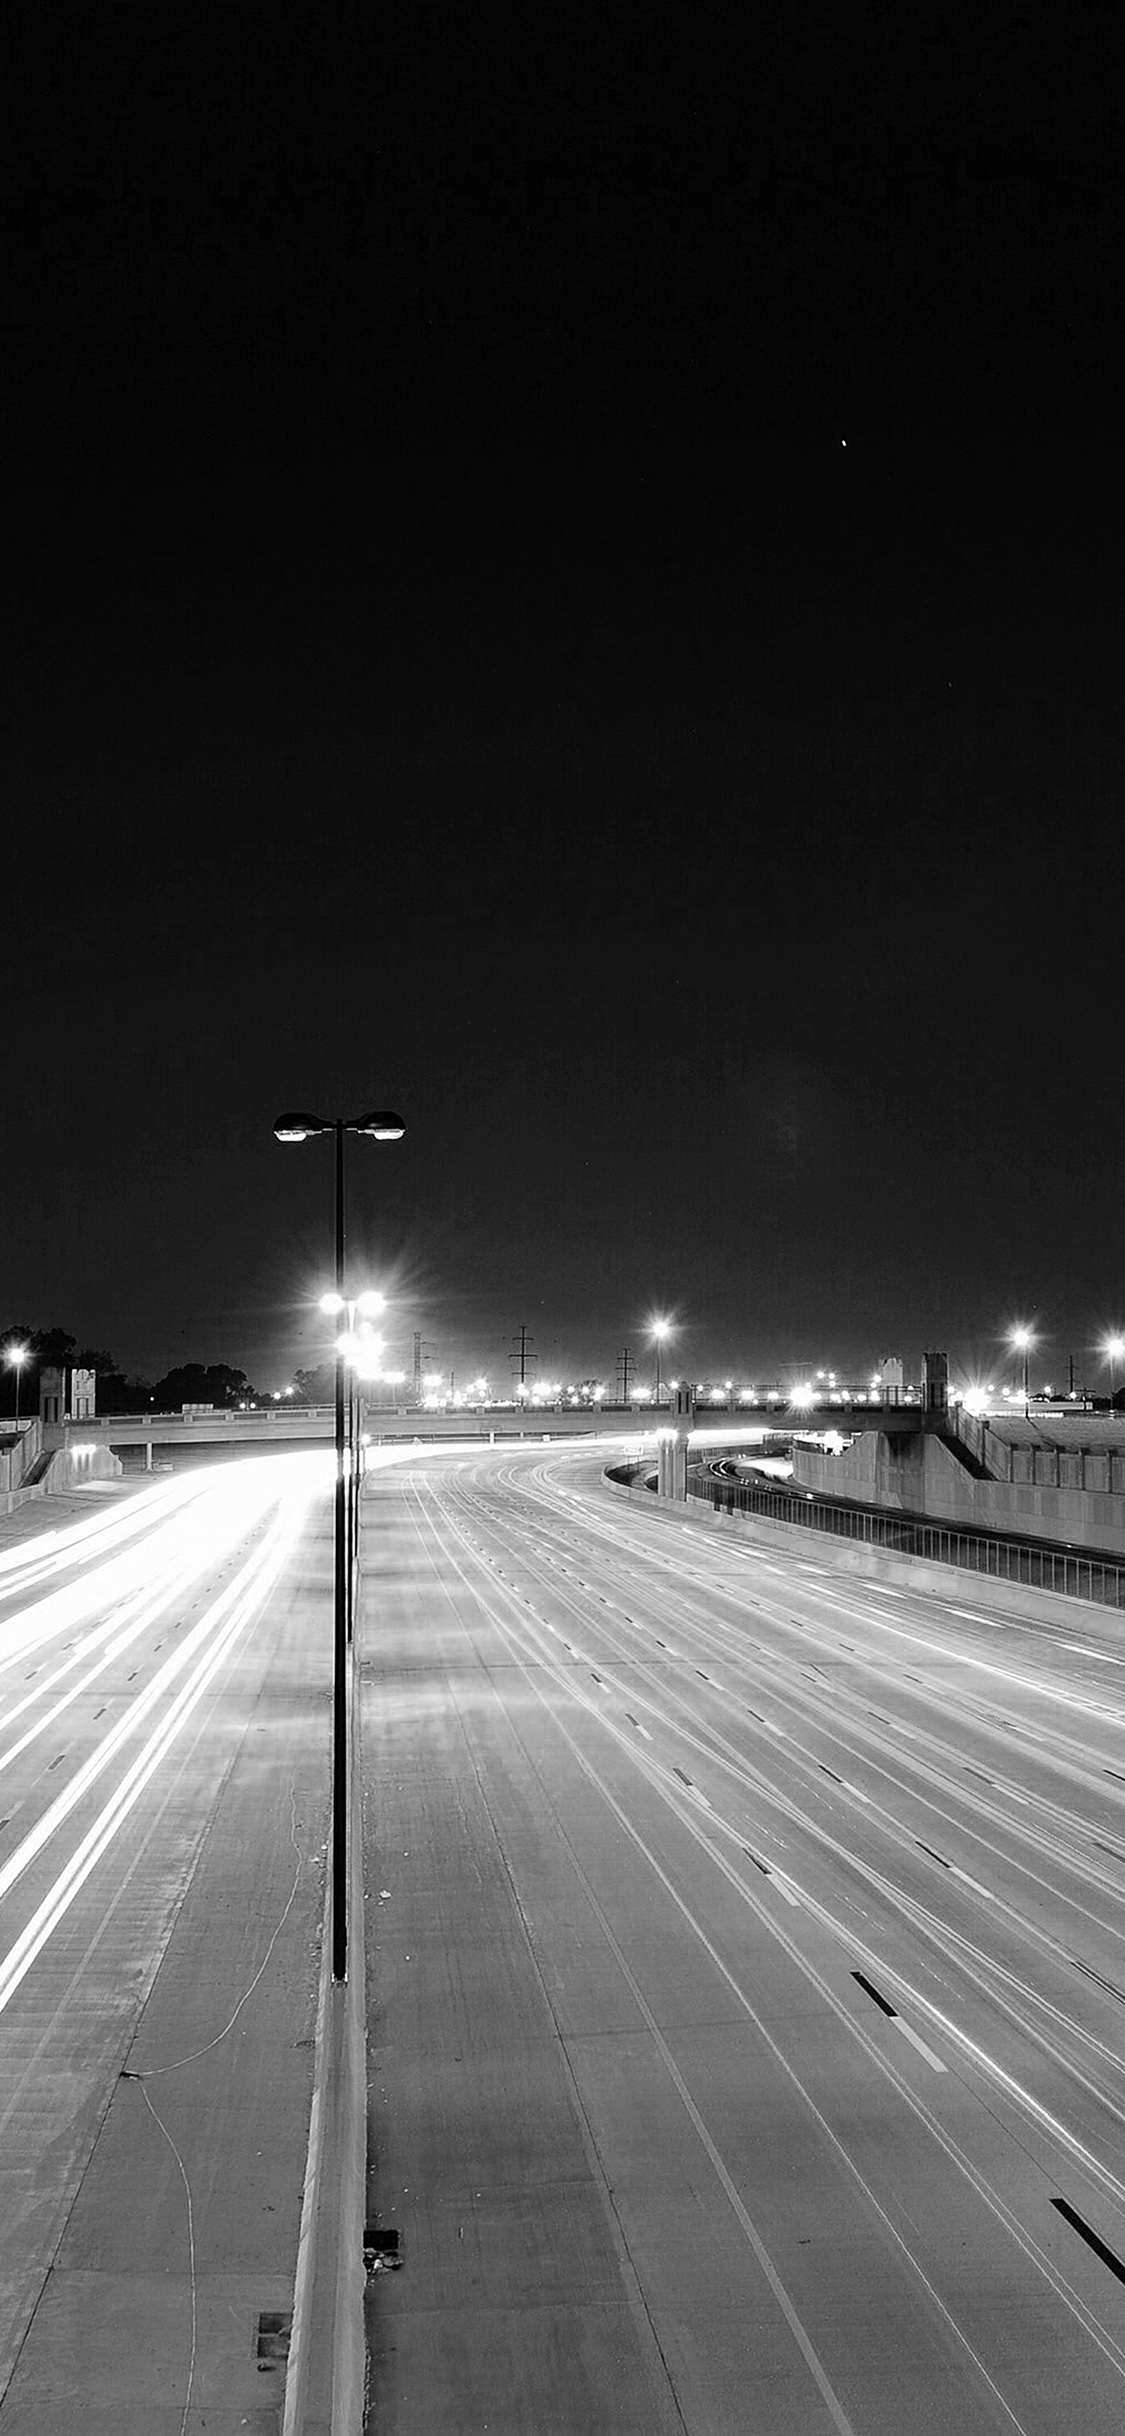 Car Lights Night Wallpaper Mv61 Road Street City Night Car Lights Dark Bw Wallpaper